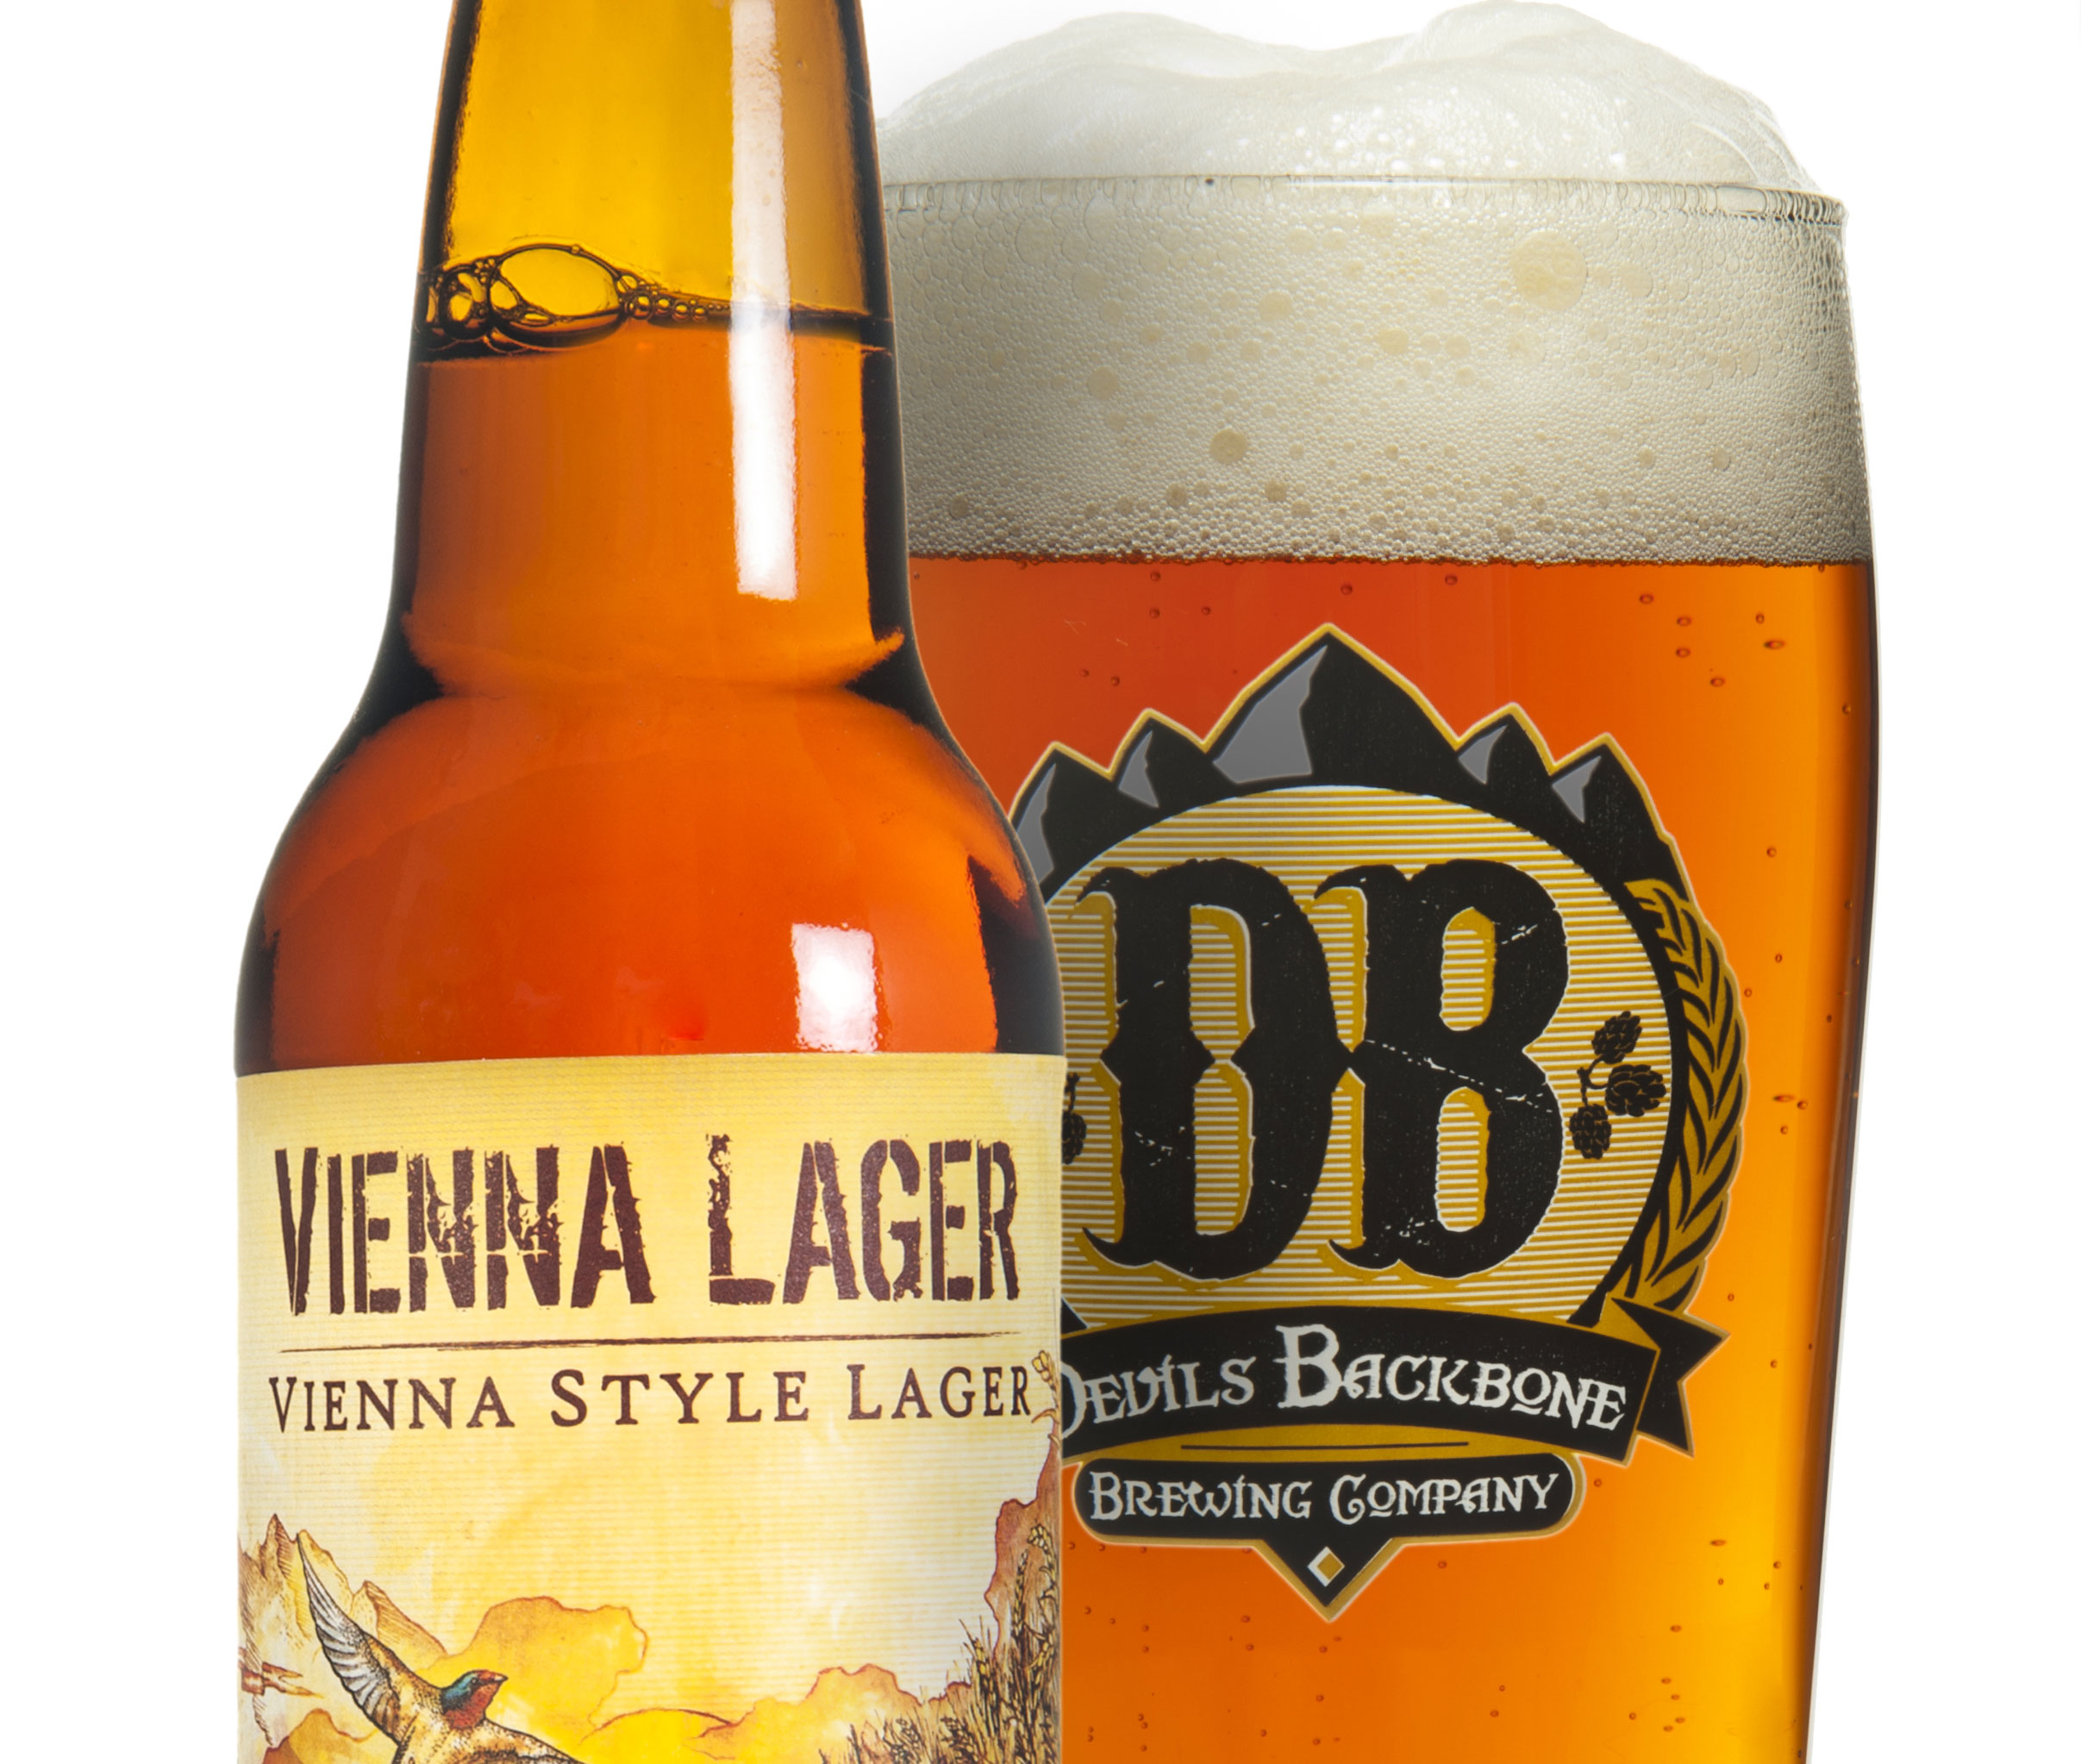 The King of Beers buys a Virginia brewer